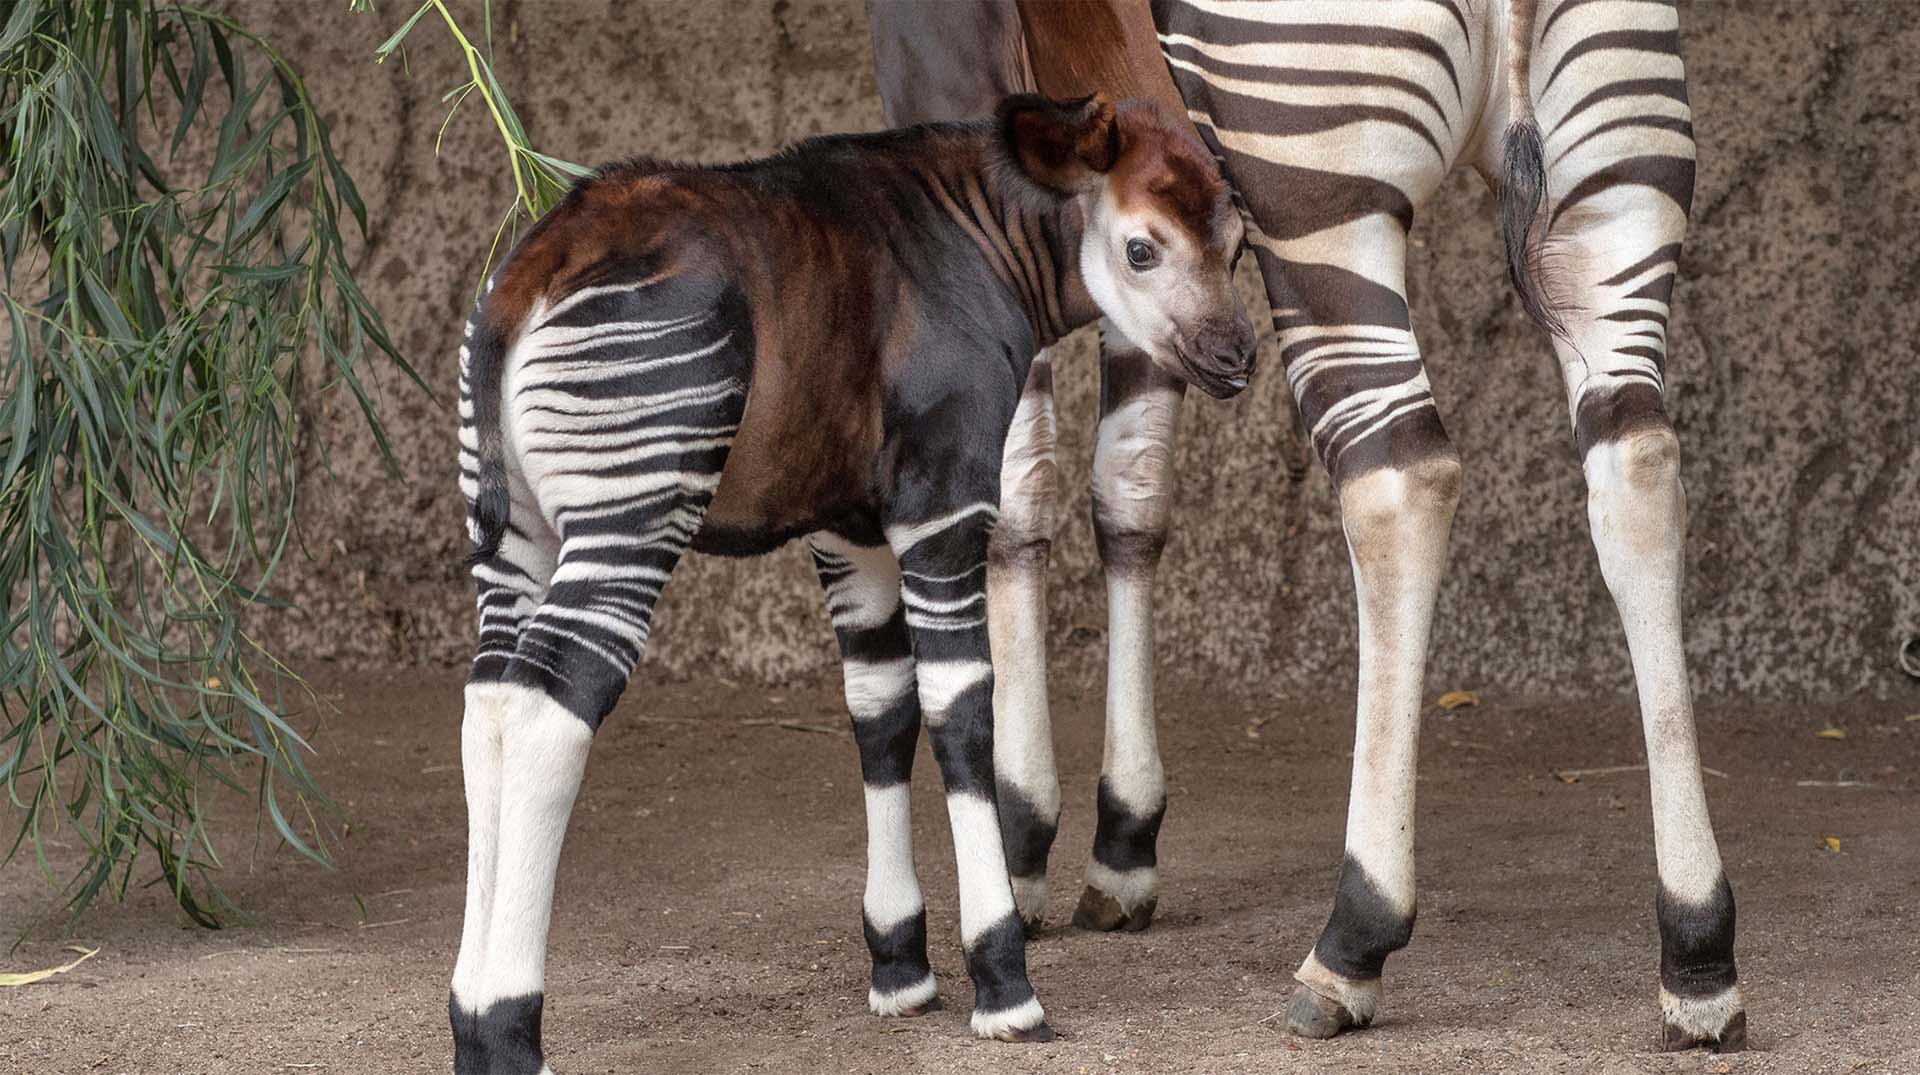 Okapi calf and mother